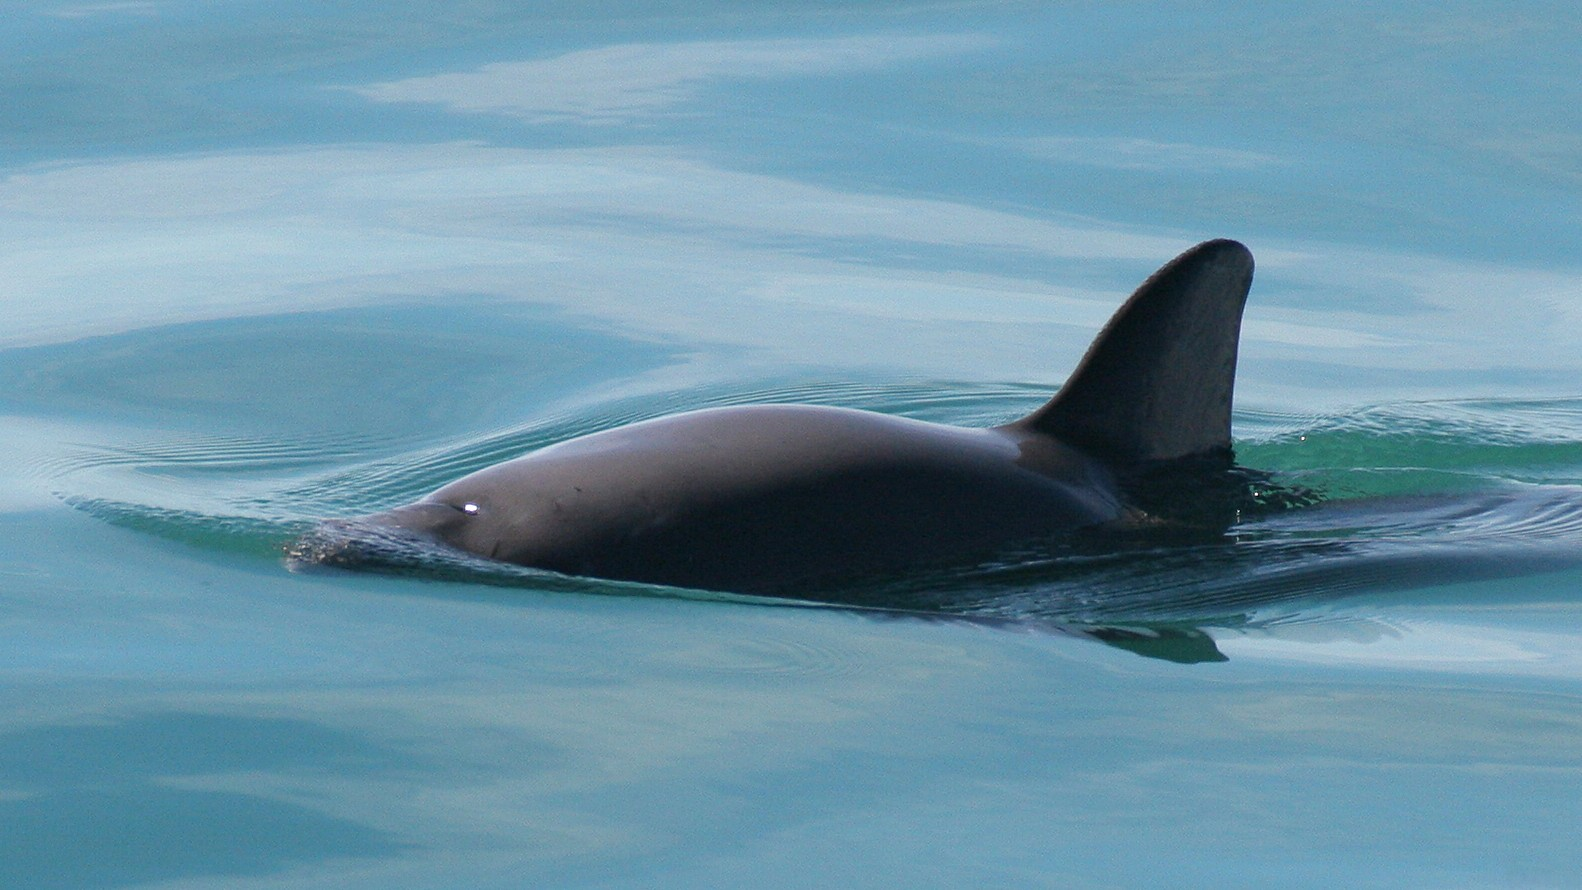 The World's Most Endangered Marine Mammal Might Have Just Got a Lifeline